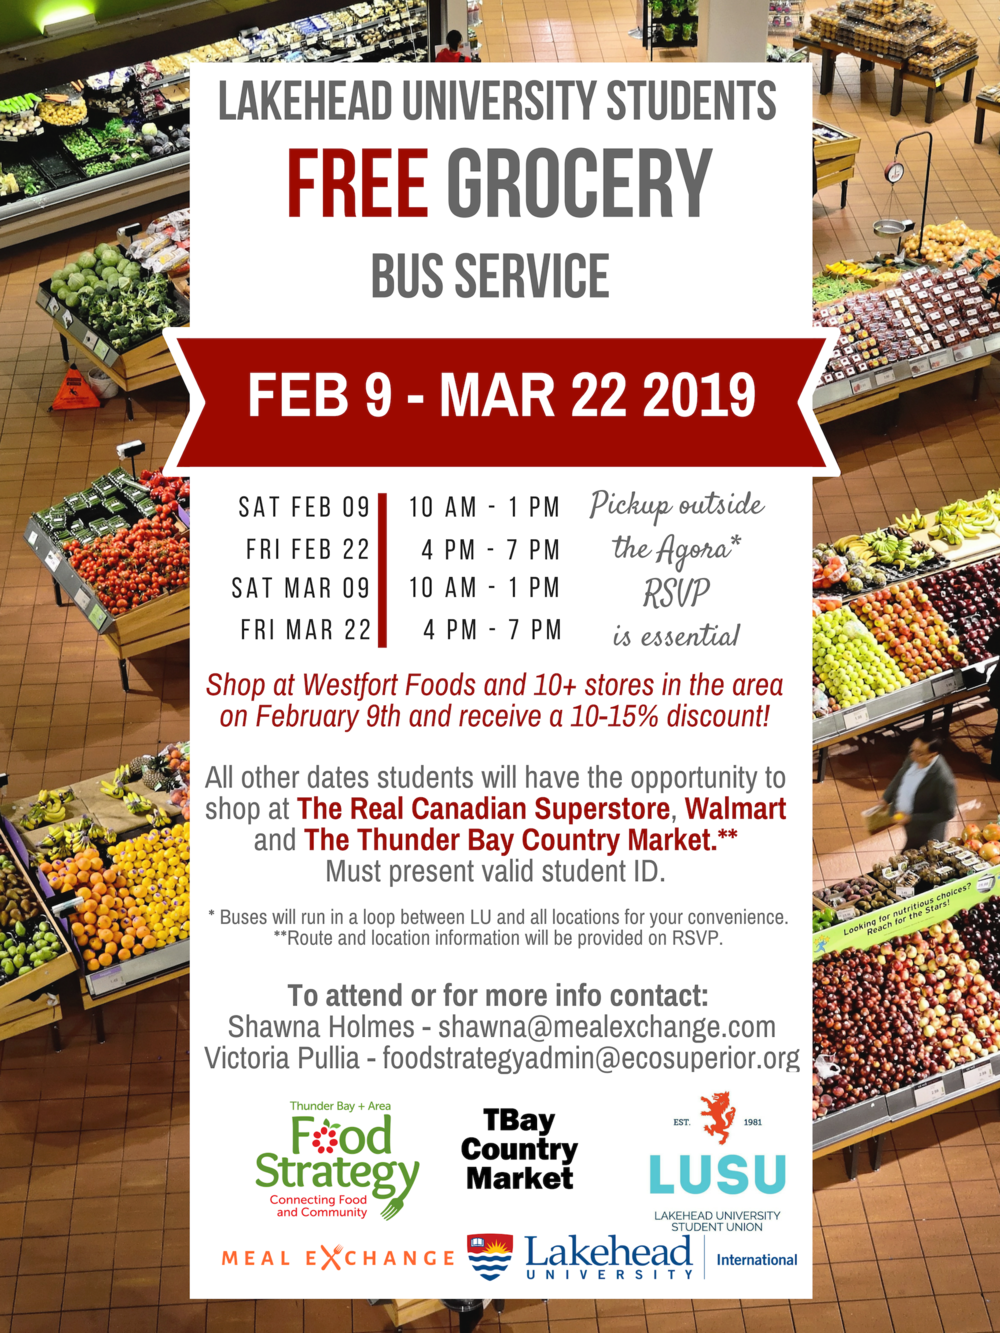 In partnership with the Thunder Bay Food Strategy and the Lakehead University Students' Union, the grocery bus pilot provided a free bus service to grocery stores for Lakehead University students, addressing lack of transportation as a barrier to food security.